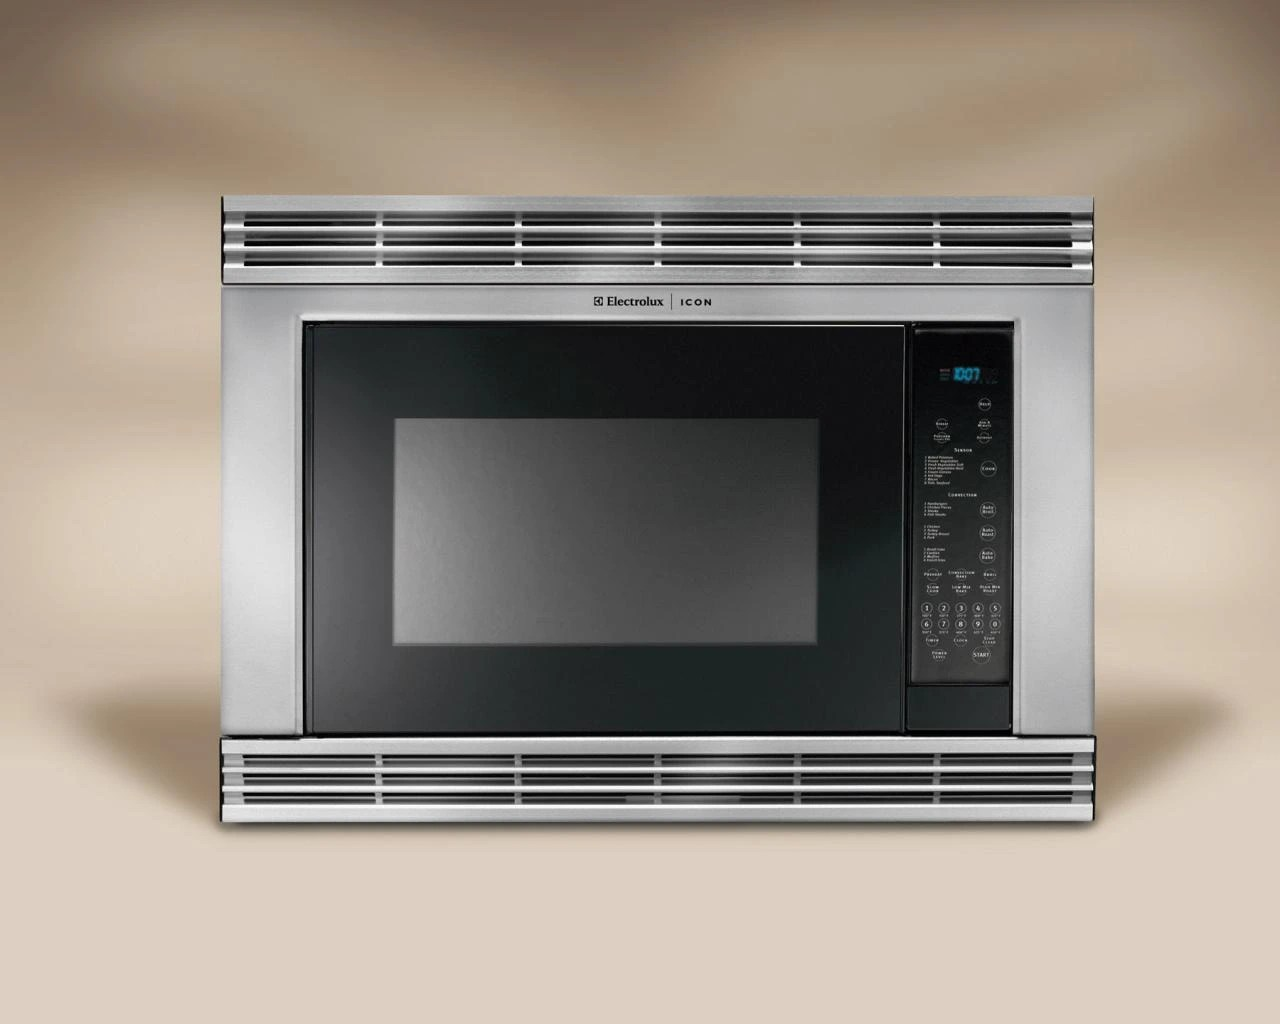 hight resolution of electrolux icon designer series 1 5 cu ft stainless steel built in microwave e30mo65gss tee vax home appliance kitchen center